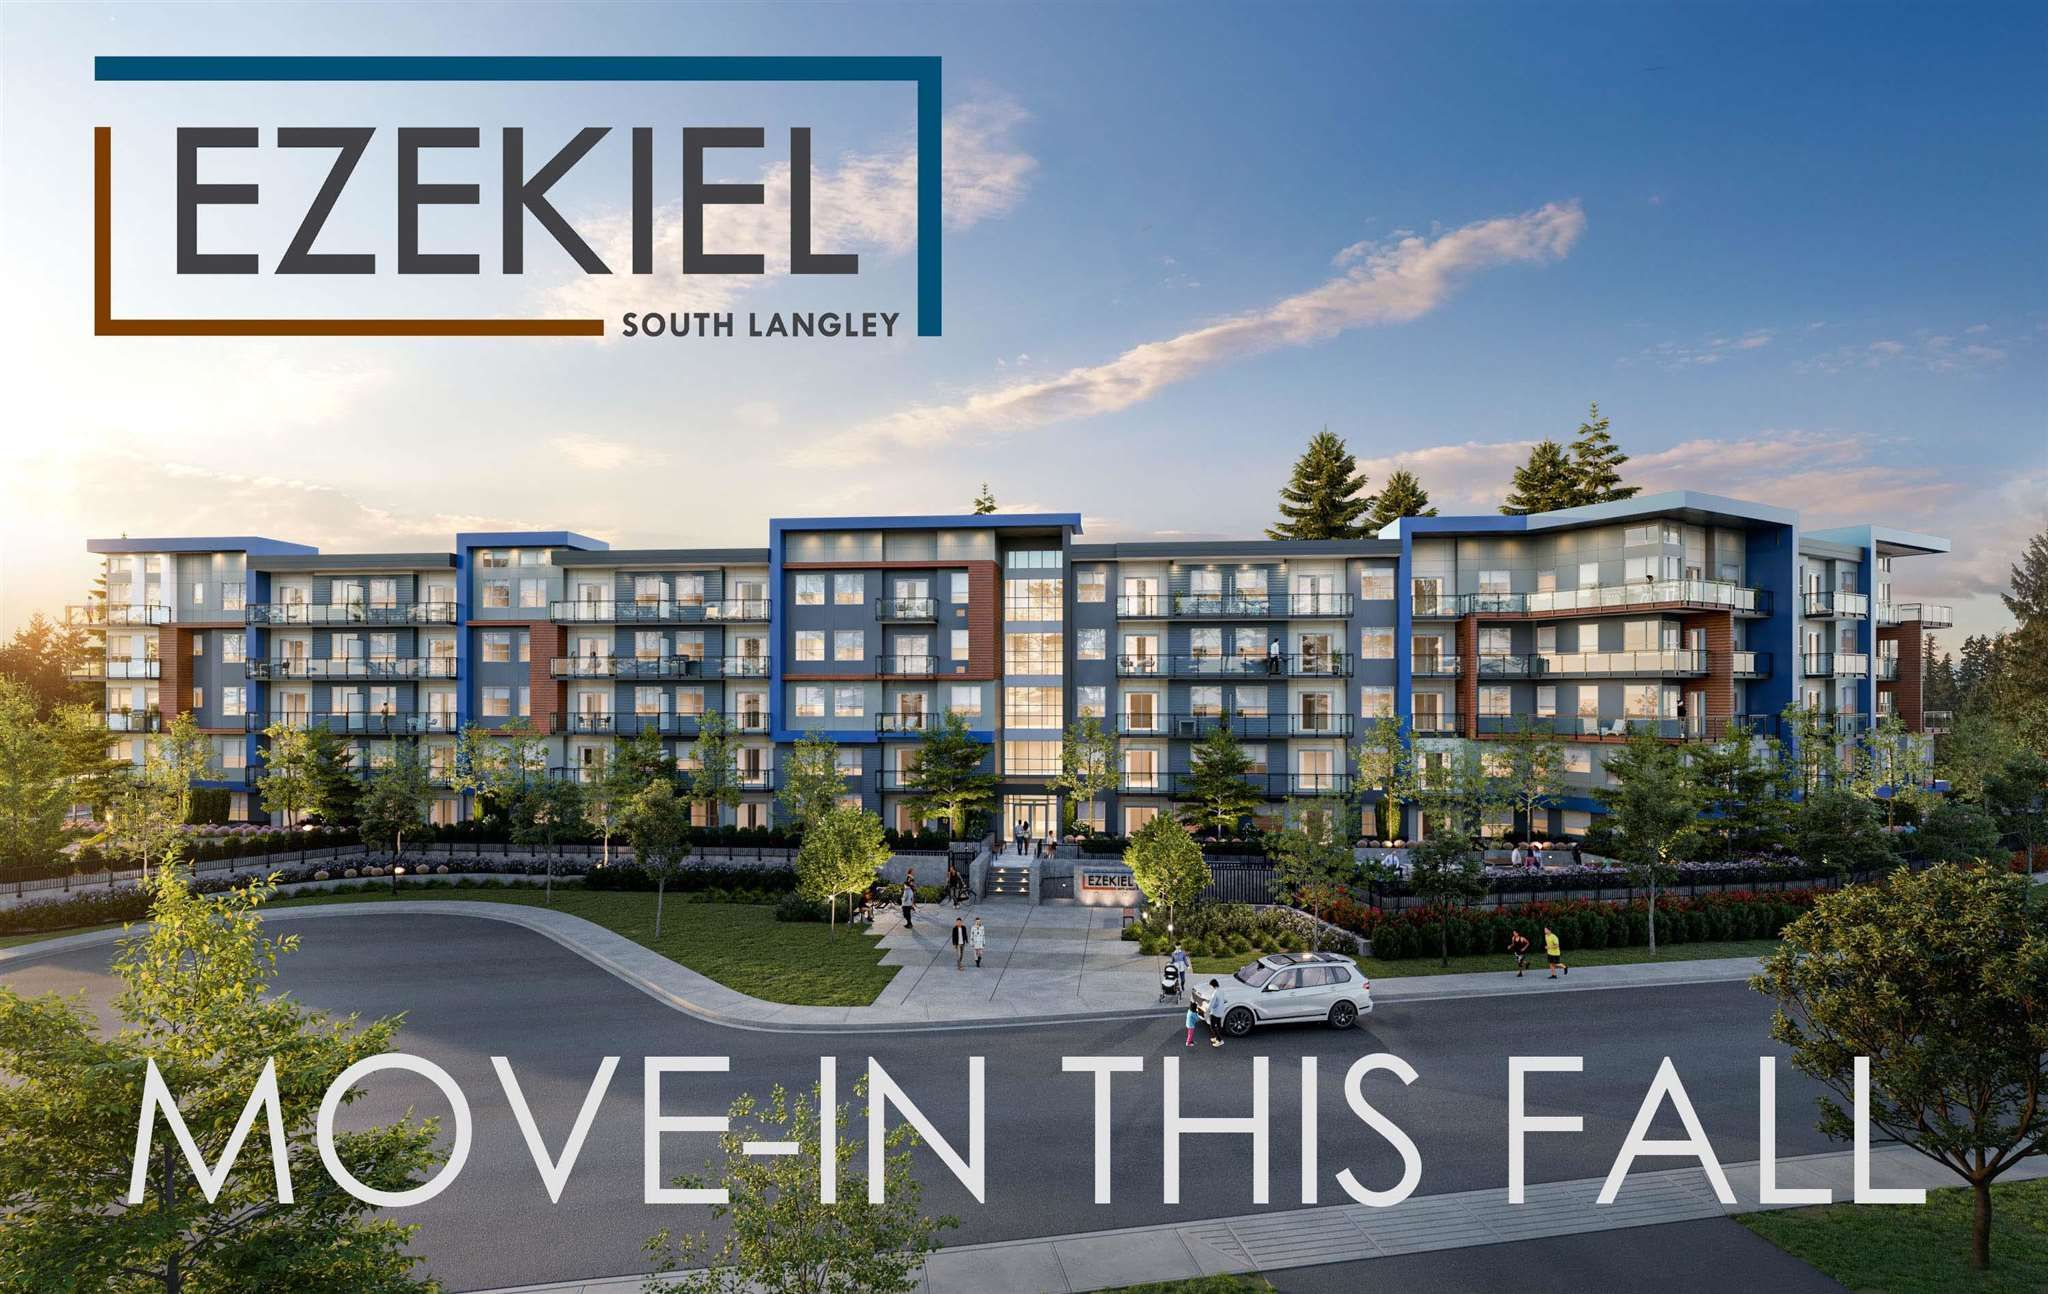 """Main Photo: 405 5486 199A Street in Langley: Langley City Condo for sale in """"Ezekiel"""" : MLS®# R2611003"""